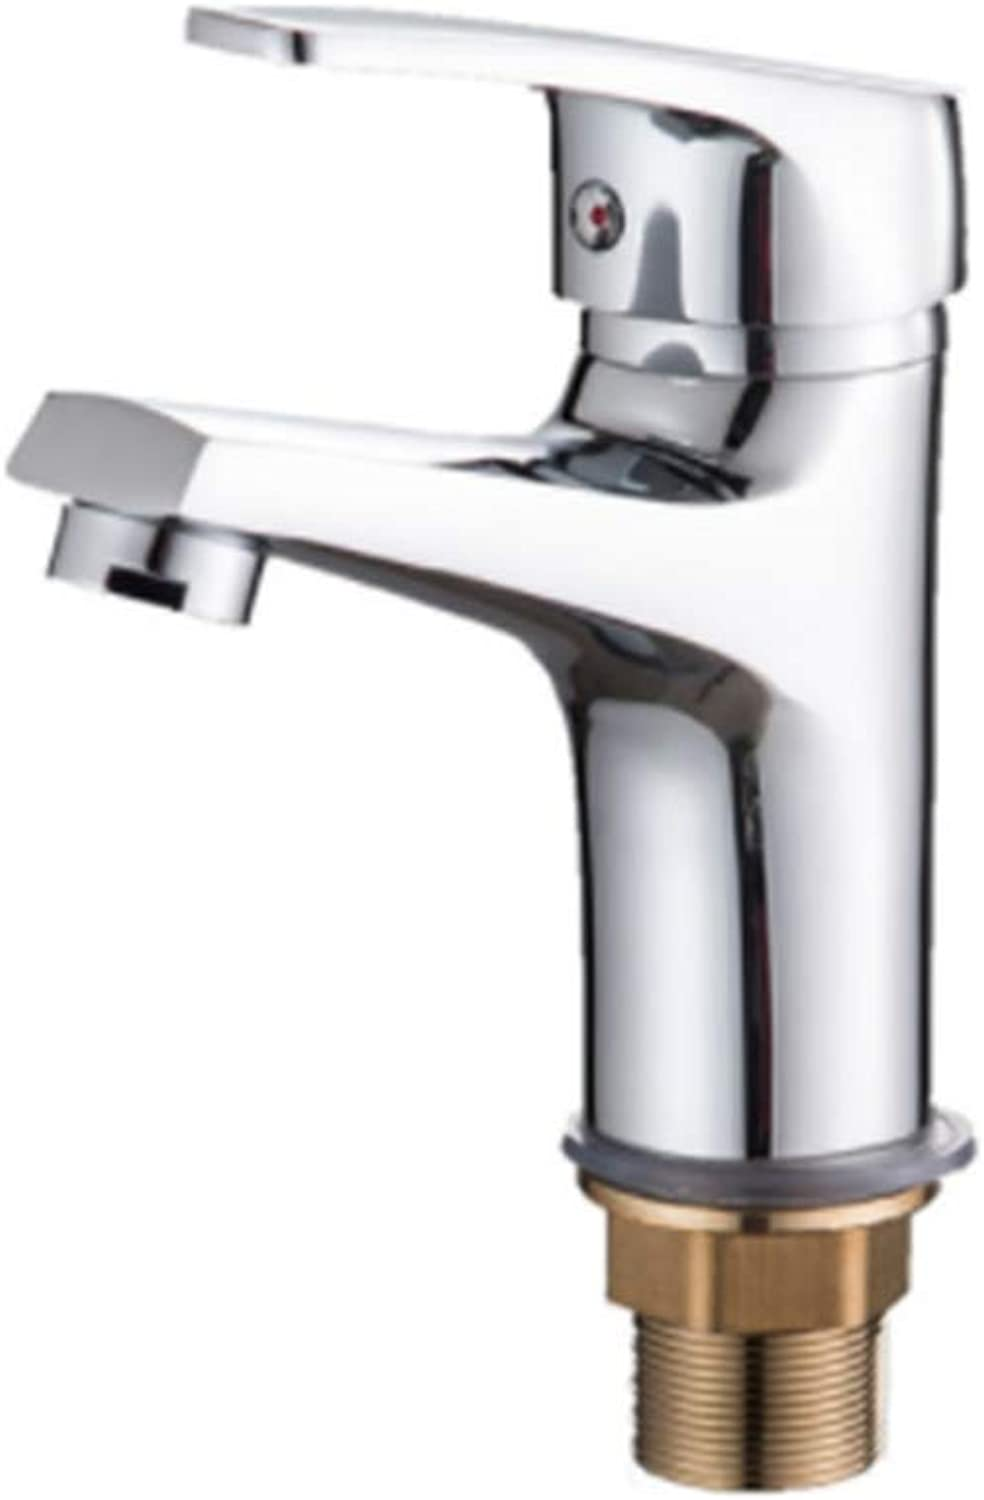 Pull Out The Pull Down Stainless Steel Mixer Bathroom Sink Faucet Basin Faucet Chrome Brass Faucet Water Faucet Basin Mixer Tap Deck